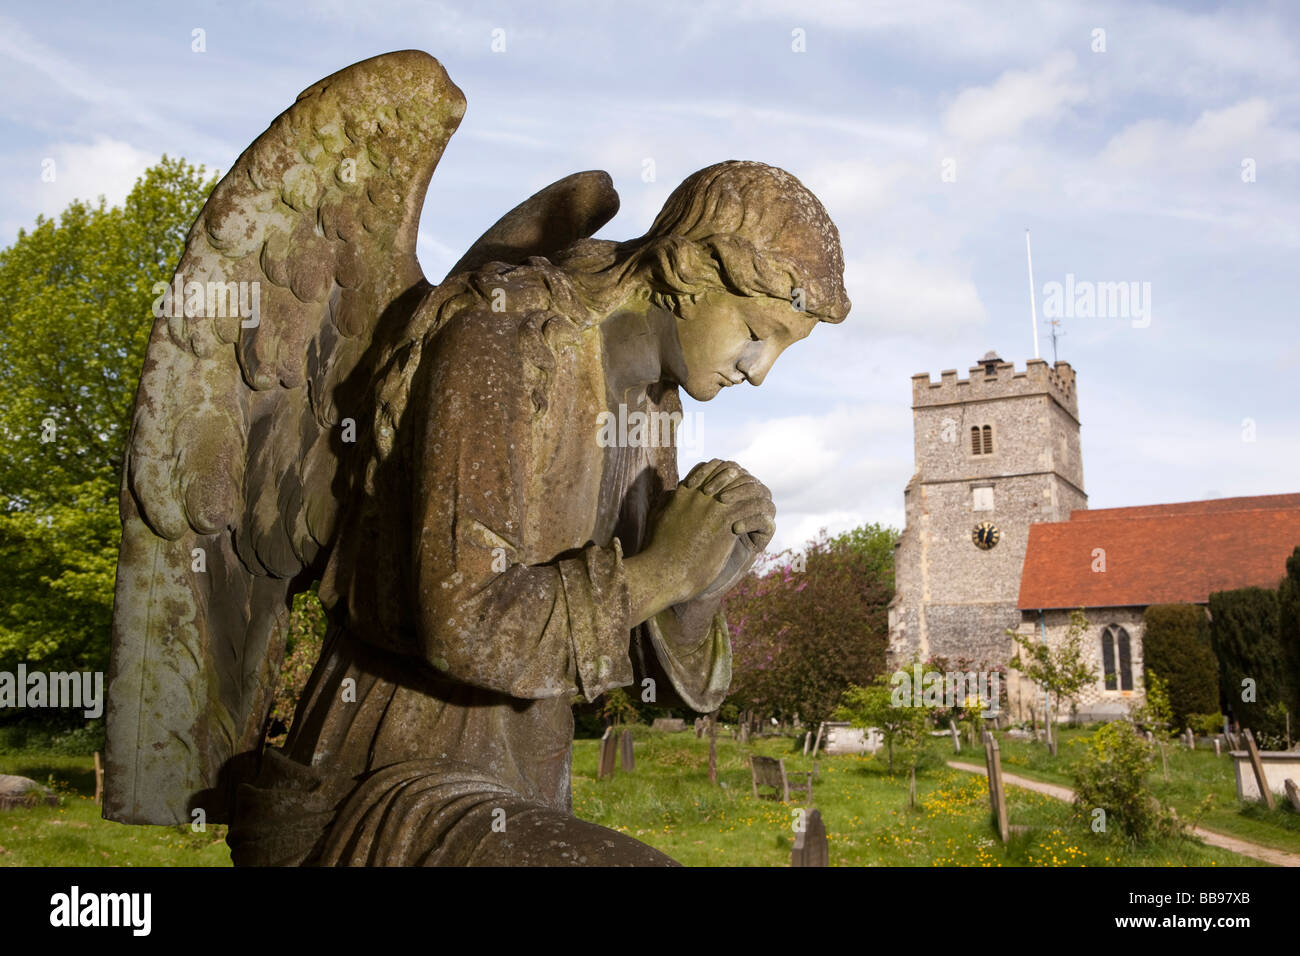 England Berkshire Cookham Holy Trinity Parish Churchyard angel memorial painted by local artist Sir Stanley Spencer - Stock Image